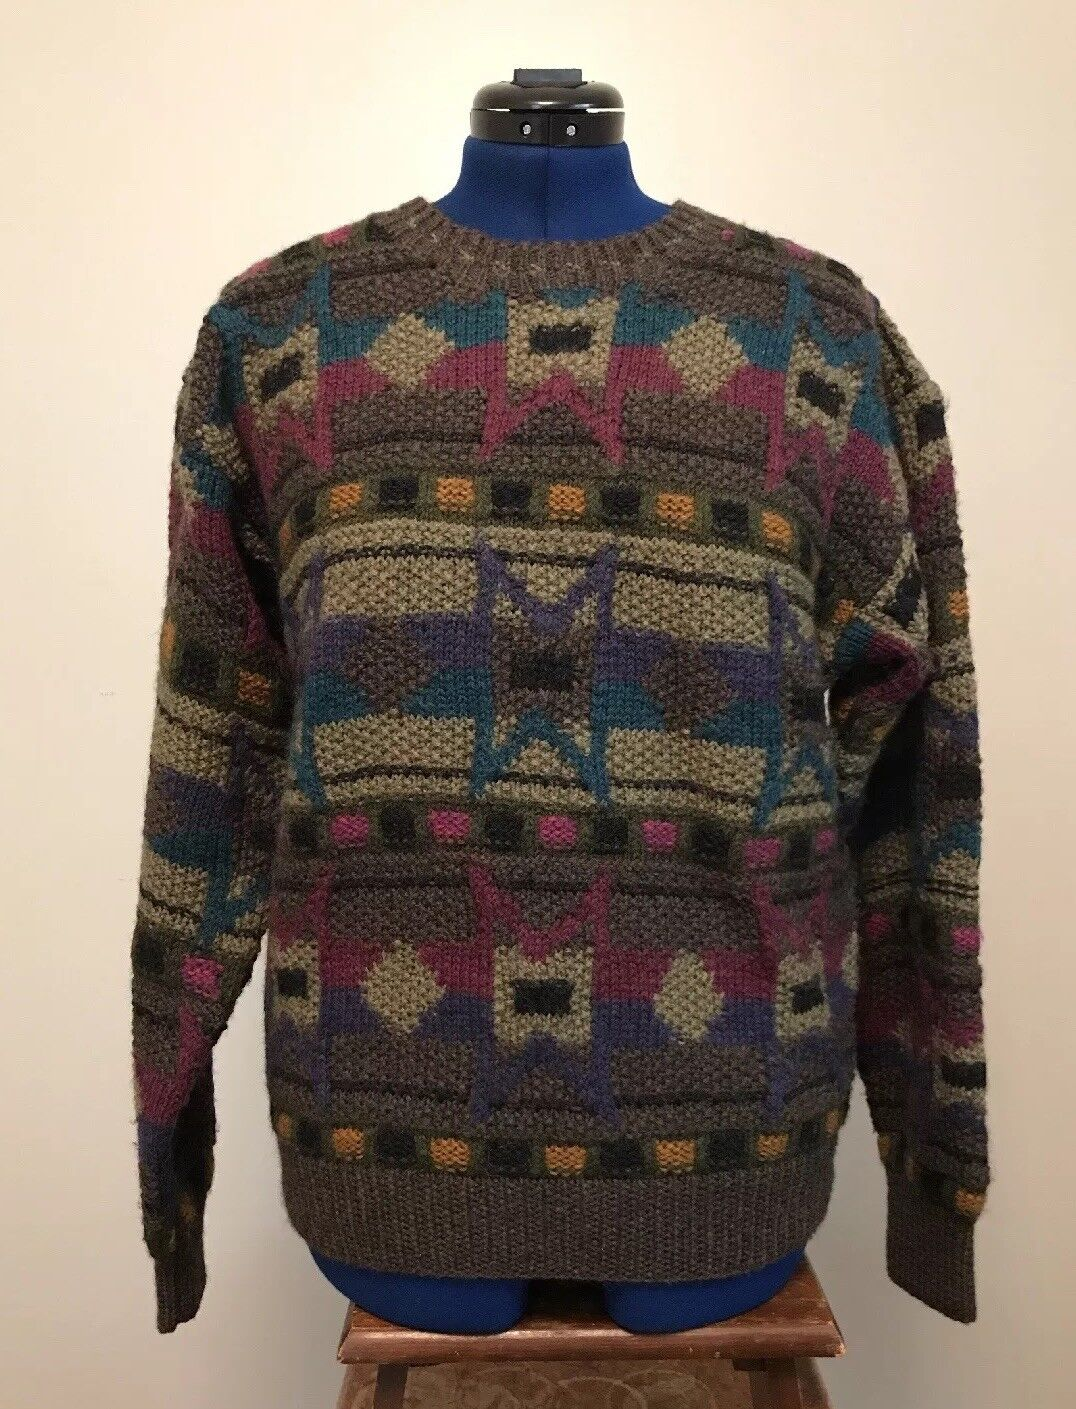 100% Wool KNIT Heavy sweater SALE  Limited Edition fisherman -BOSTON TRADERS